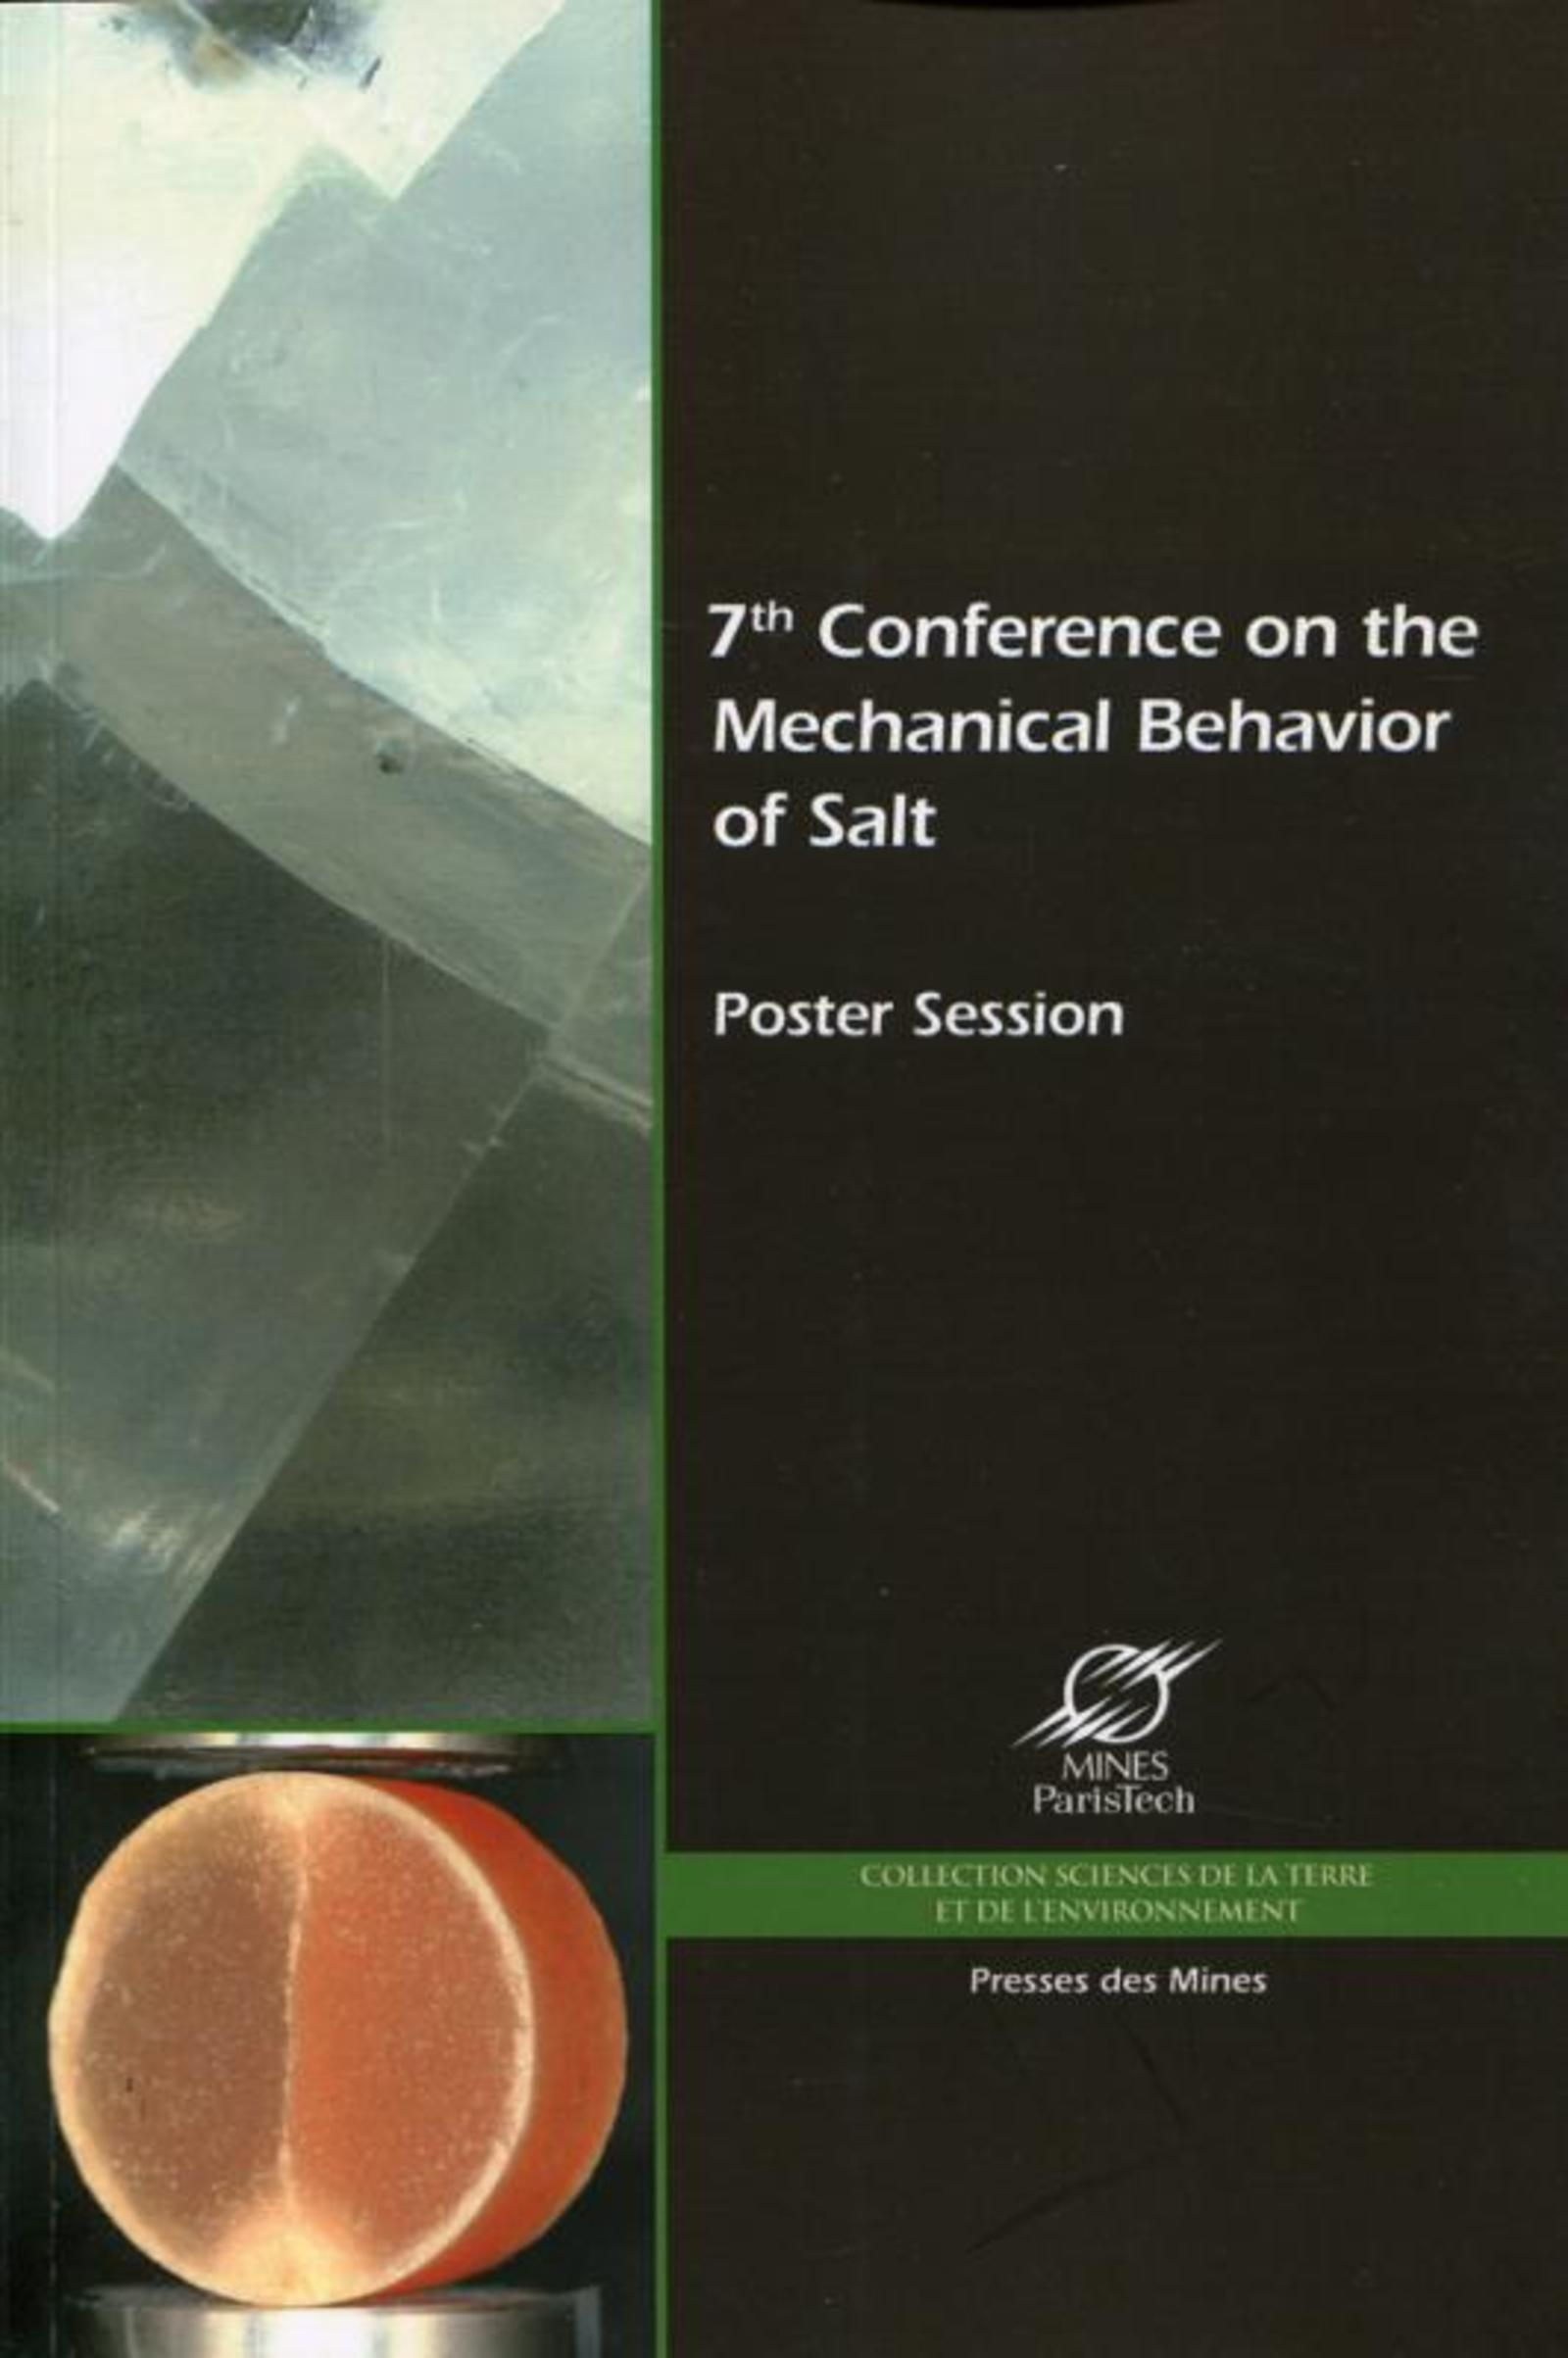 7TH CONFERENCE ON THE MECHANICAL BEHAVIOR OF SALT - POSTER SESSION - POSTER SESSION.